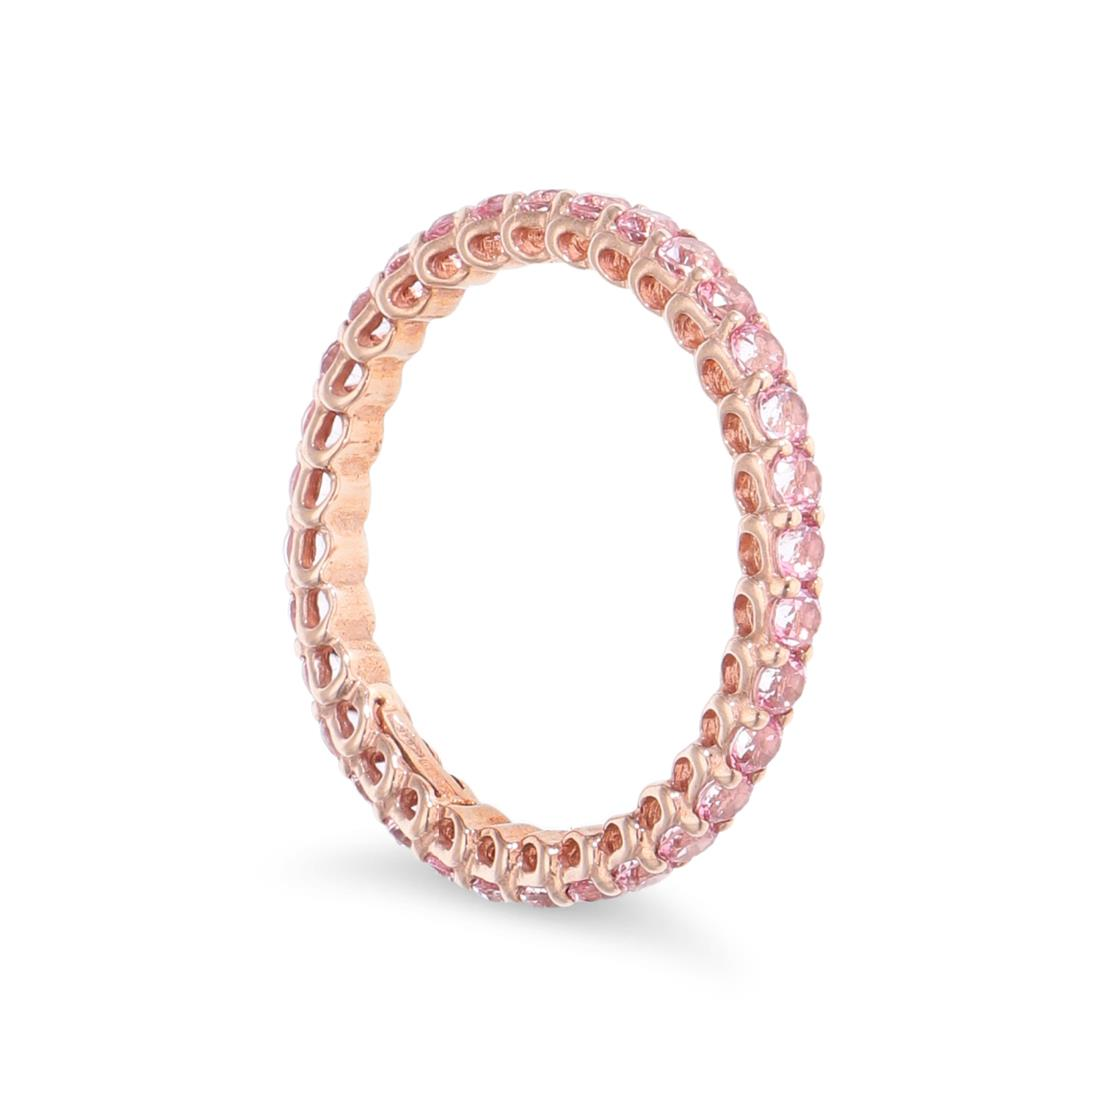 Eternity ring with pink topaz - ROBERTO DEMEGLIO